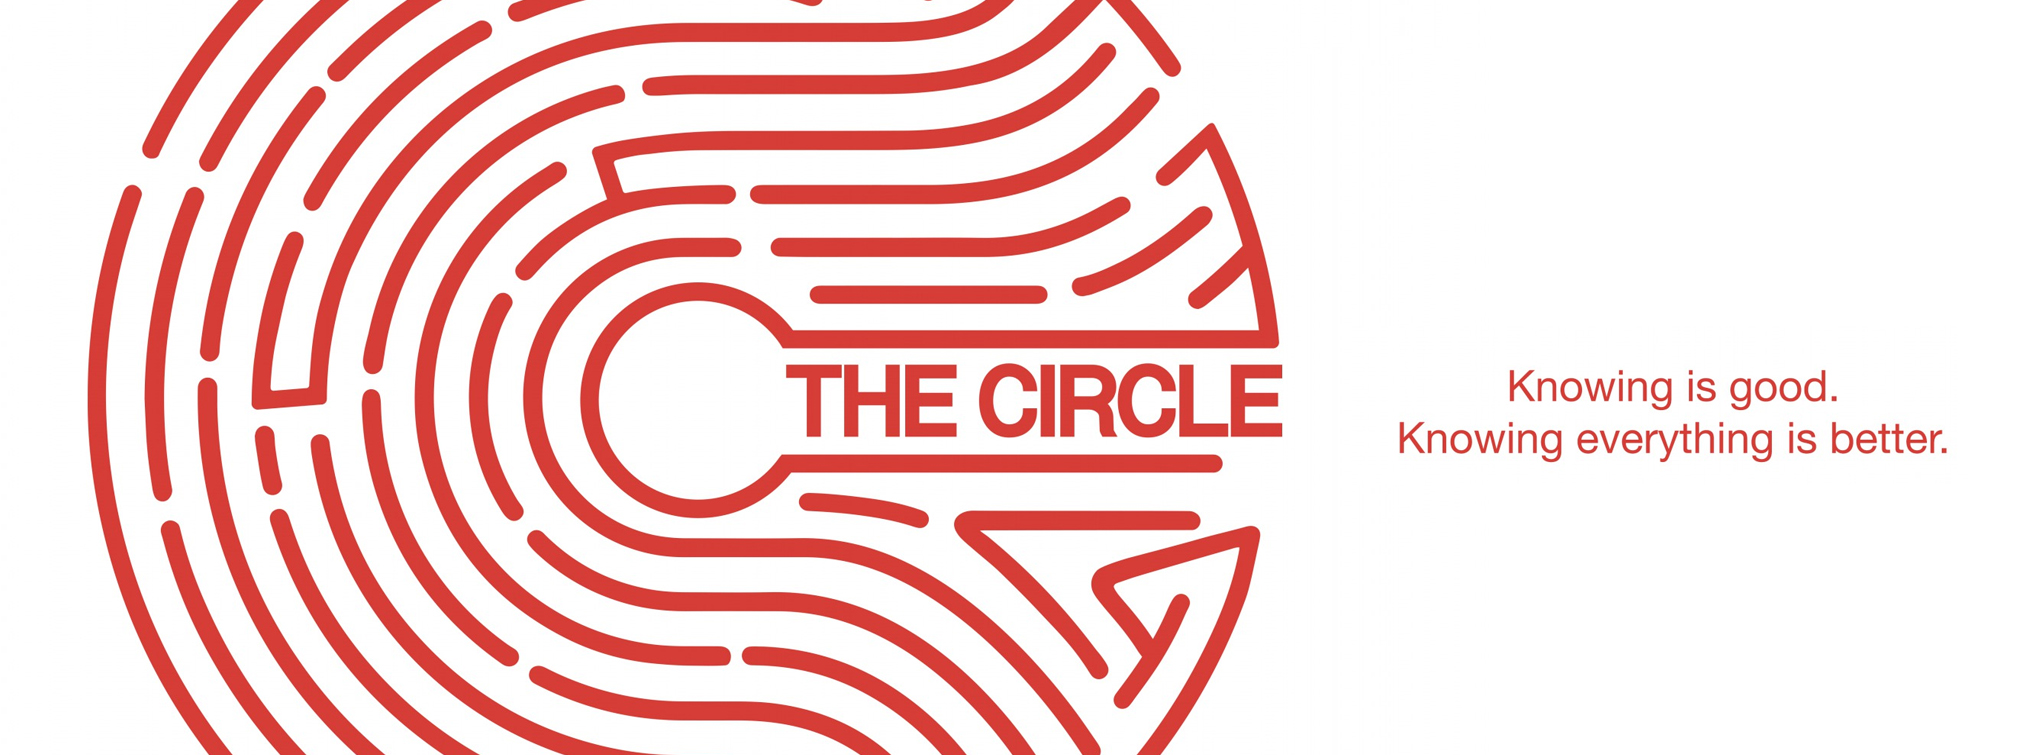 The Circle now playing at select Fridley Theatres!